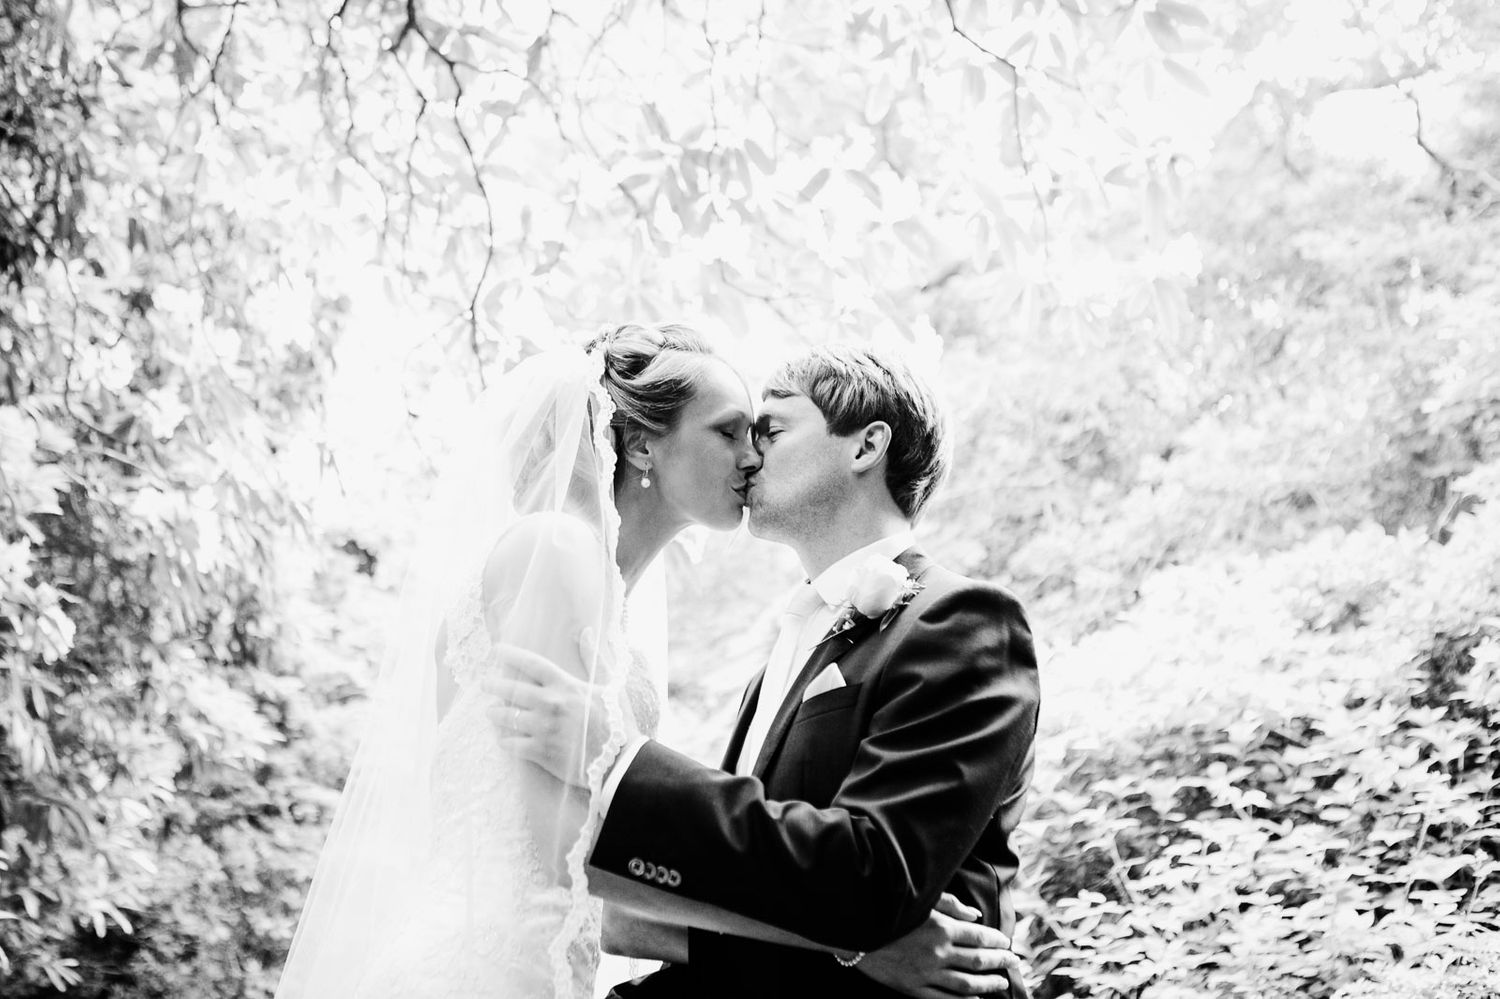 creative wedding photography by Tuscany photographer Elizabeth Armitage